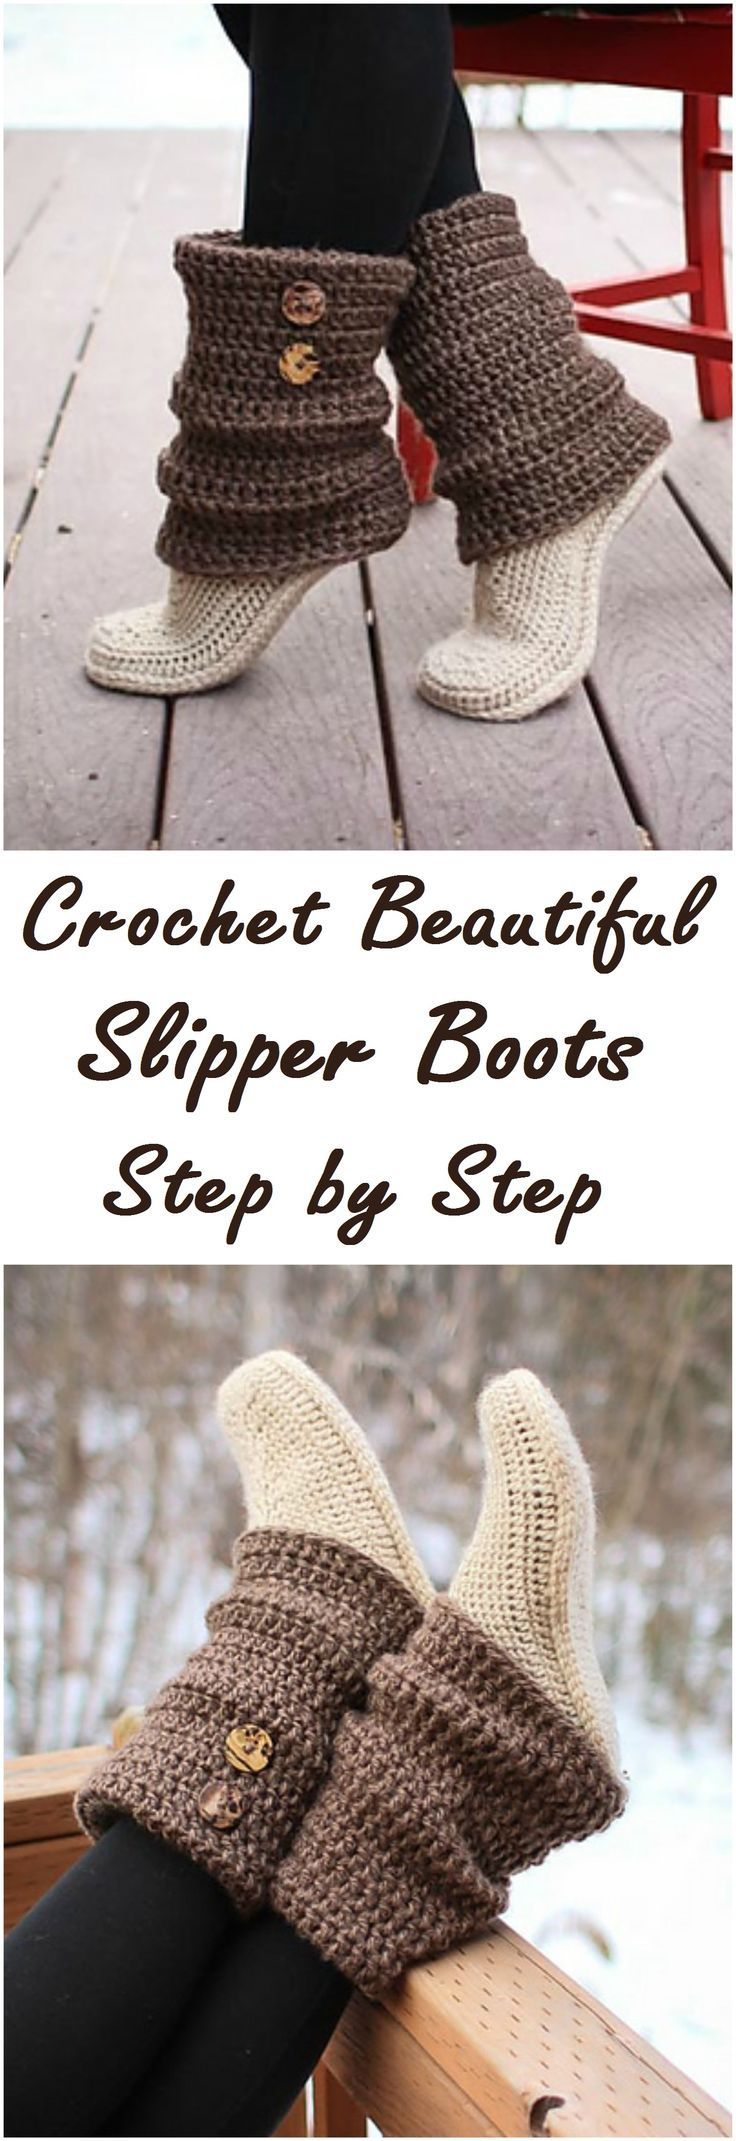 Crochet Beautiful Slipper Boots